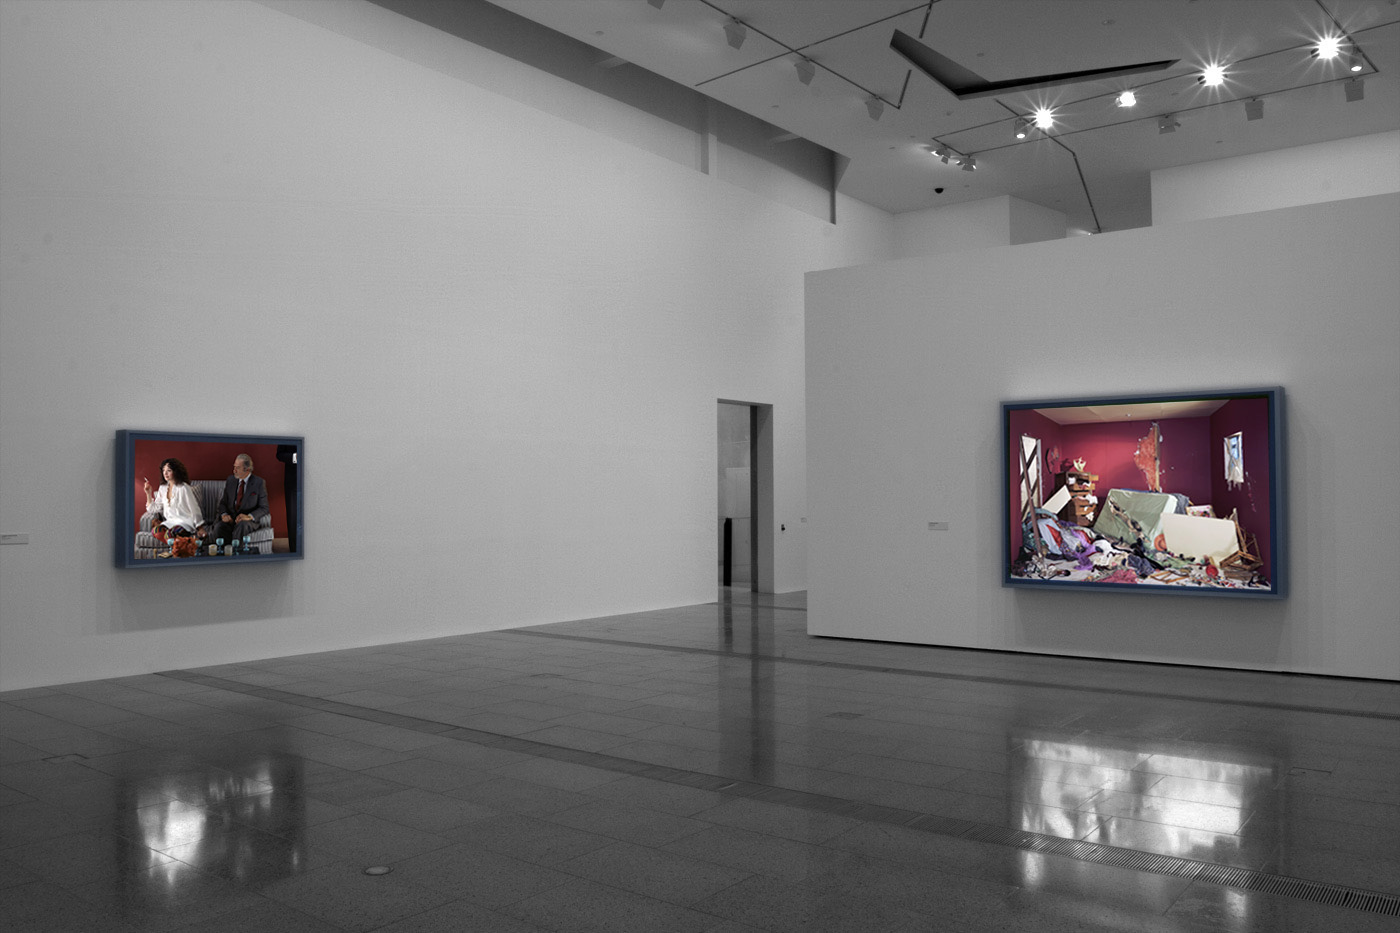 Exhibition: Jeff Wall Photographs at The Ian Potter Centre: National Gallery of Victoria ...